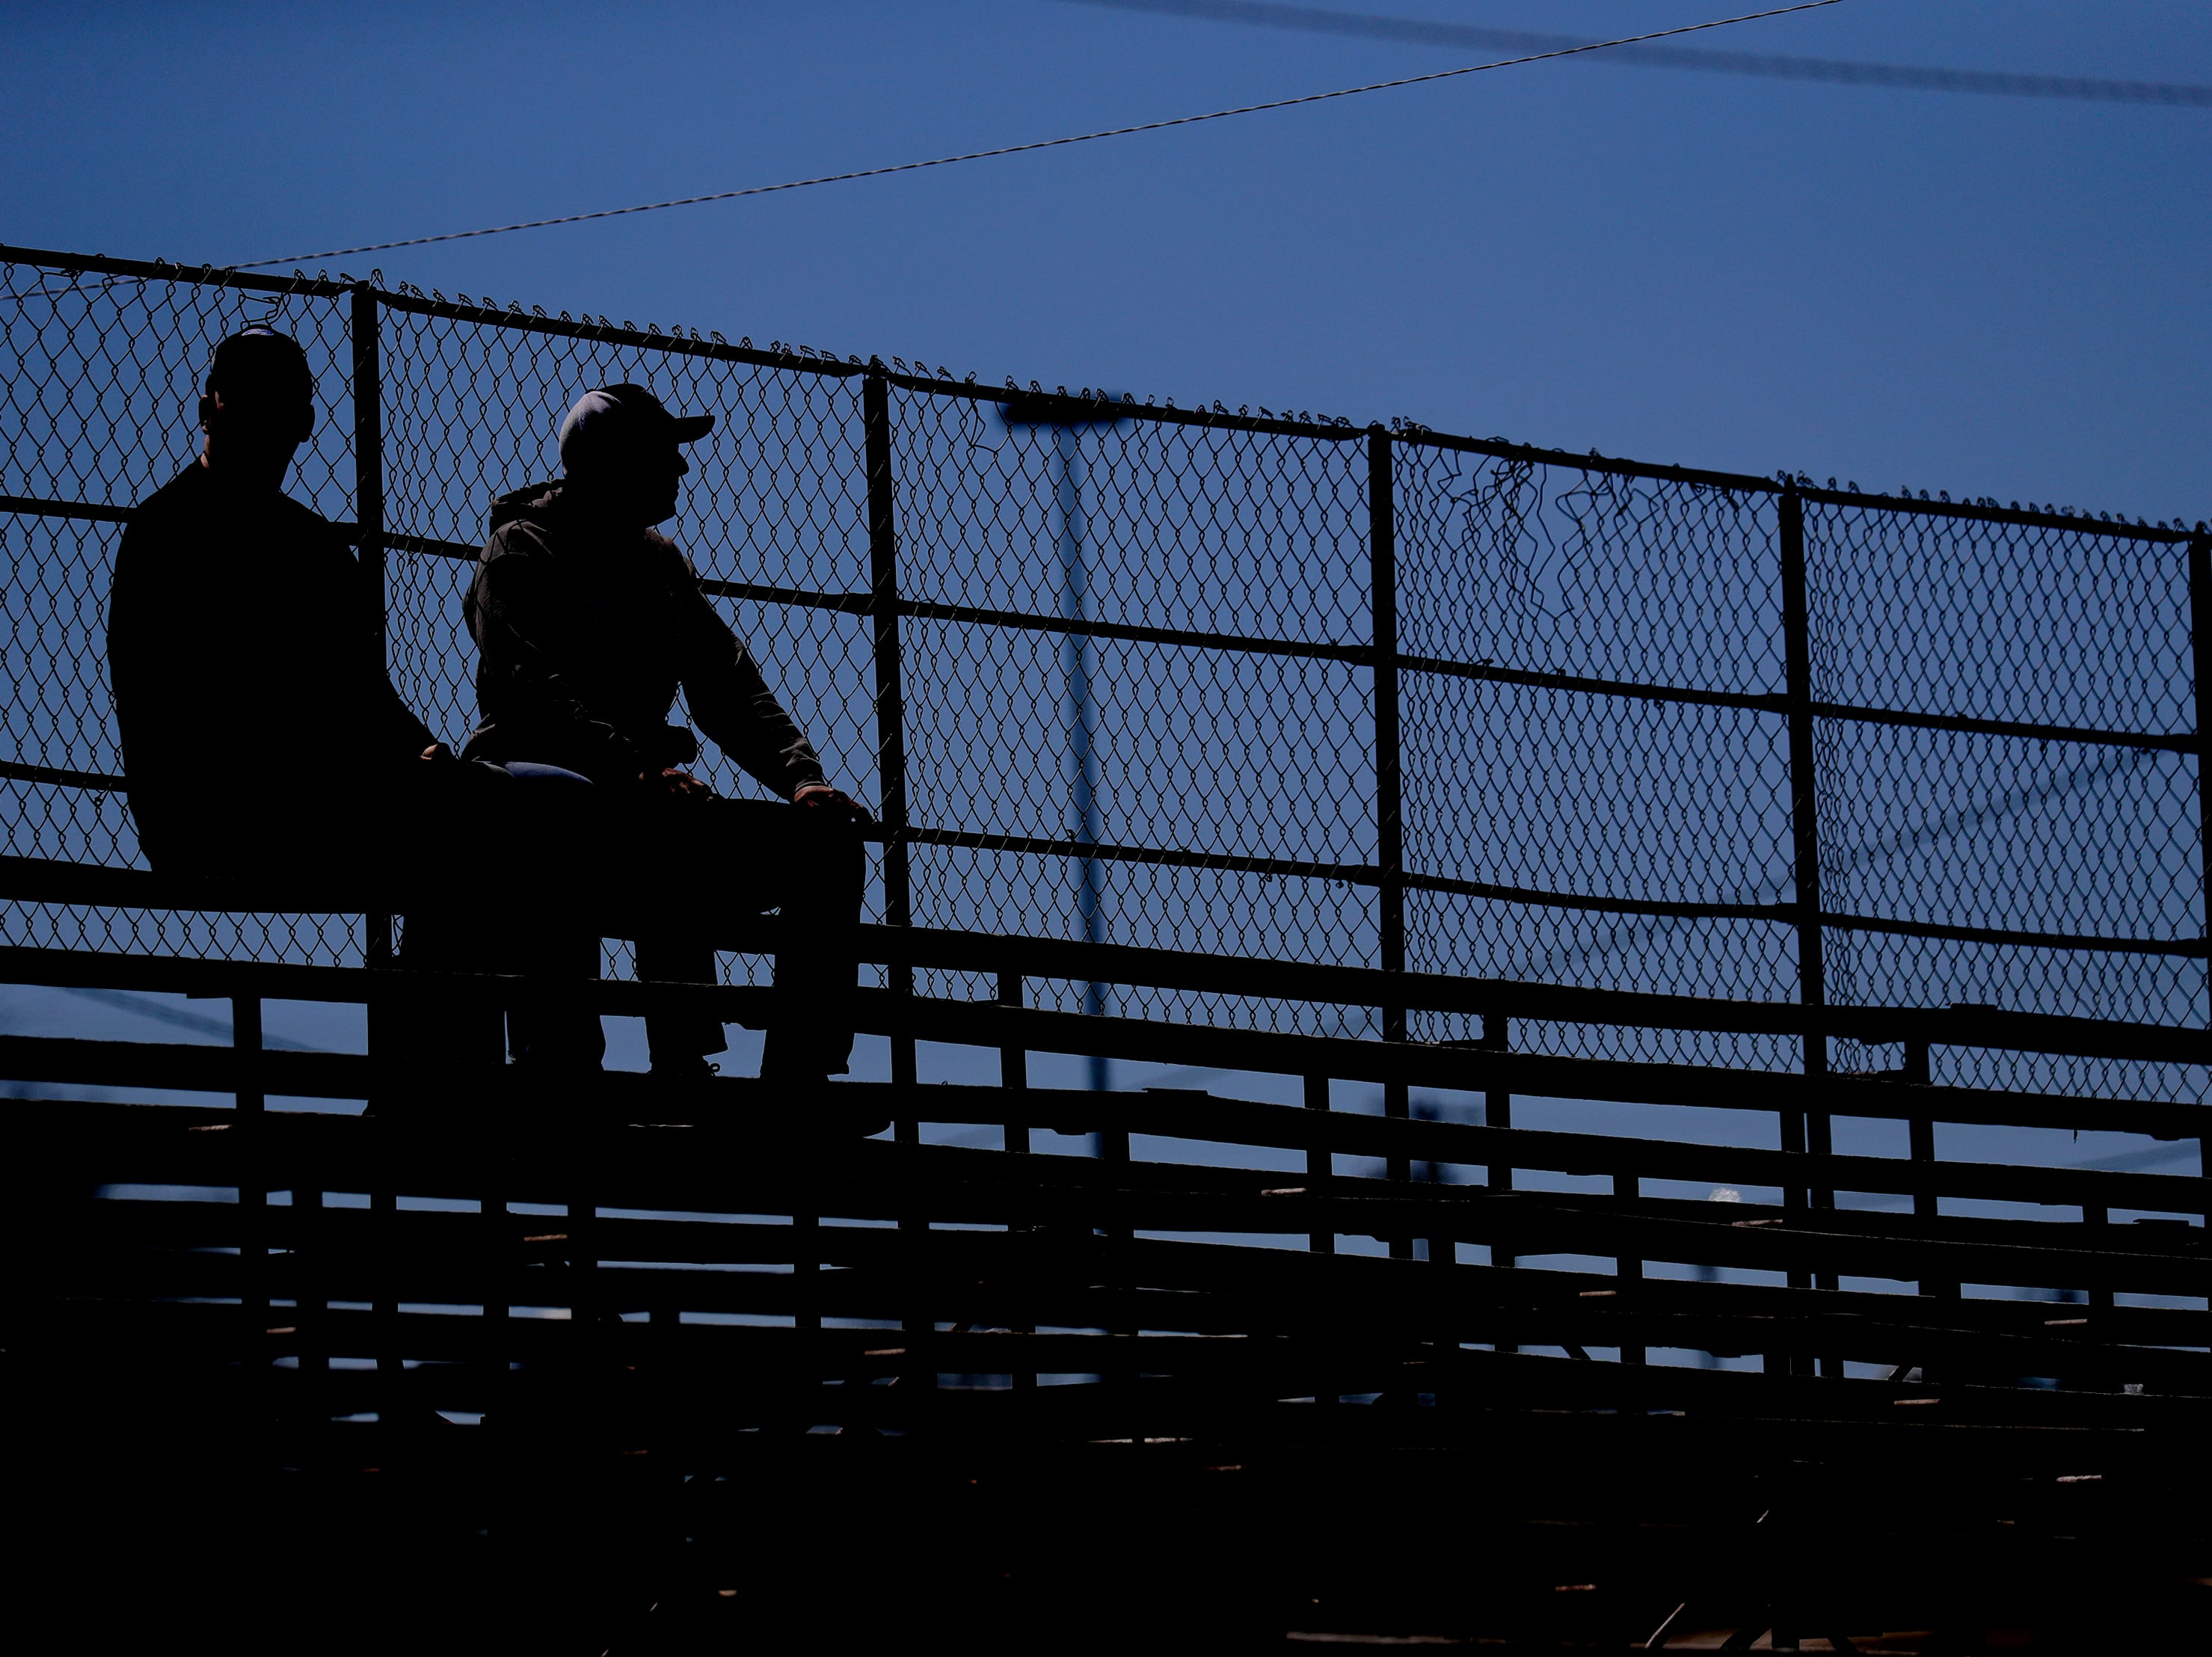 Fans look on from the stands during the Wisconsin International Raceway Strip Test & Tune event Saturday, April 19, 2019, in Kaukauna, Wis. Drivers spent the day getting safety inspections, tune ups and test runs on the track for the upcoming season.Dan Powers/USA TODAY NETWORK-Wisconsin